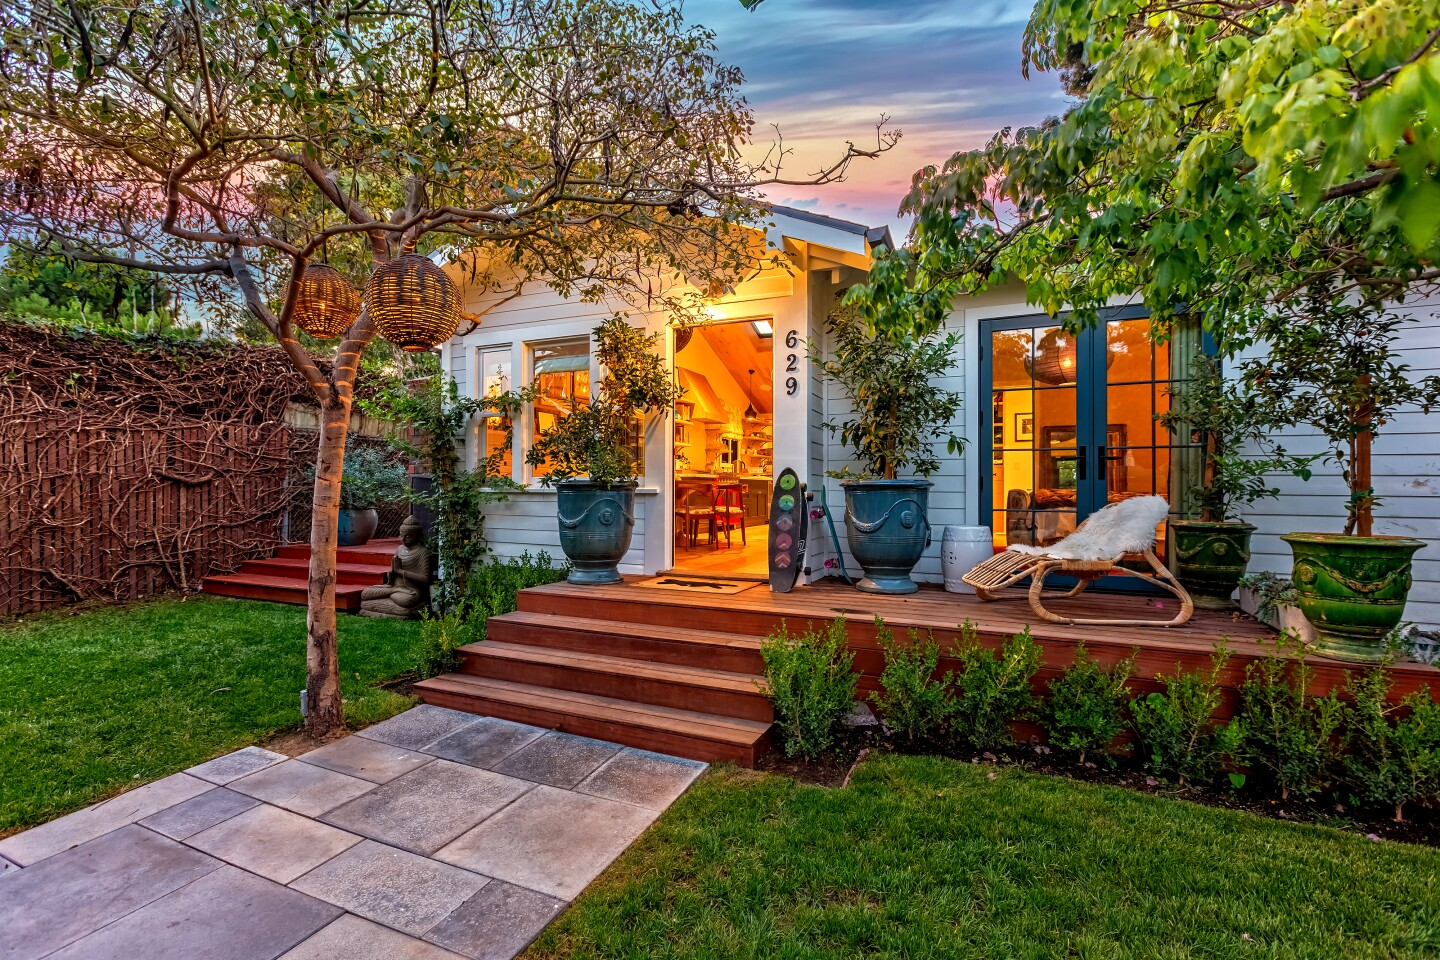 Dowdy Venice cottages transform into eclectic wonders